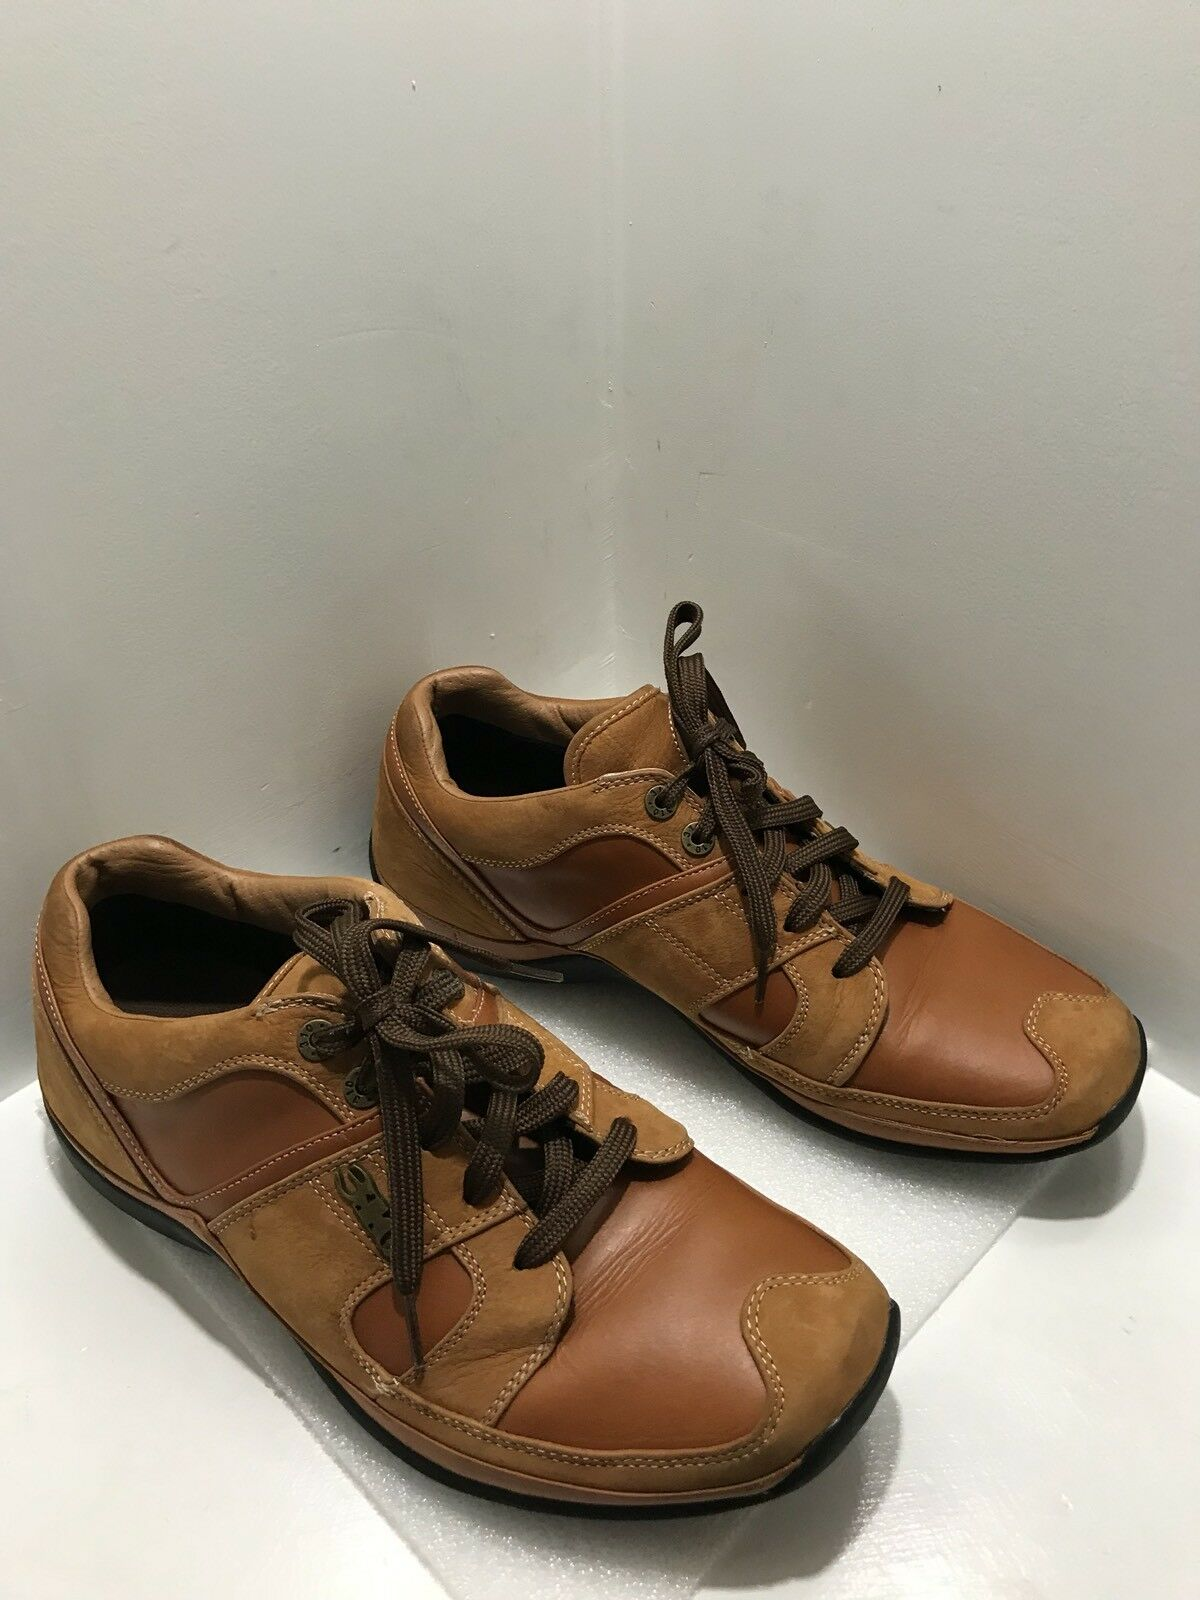 310 Motoring Cognac Leather/Suede  Lace-up Two-Tone Shoes Size 12